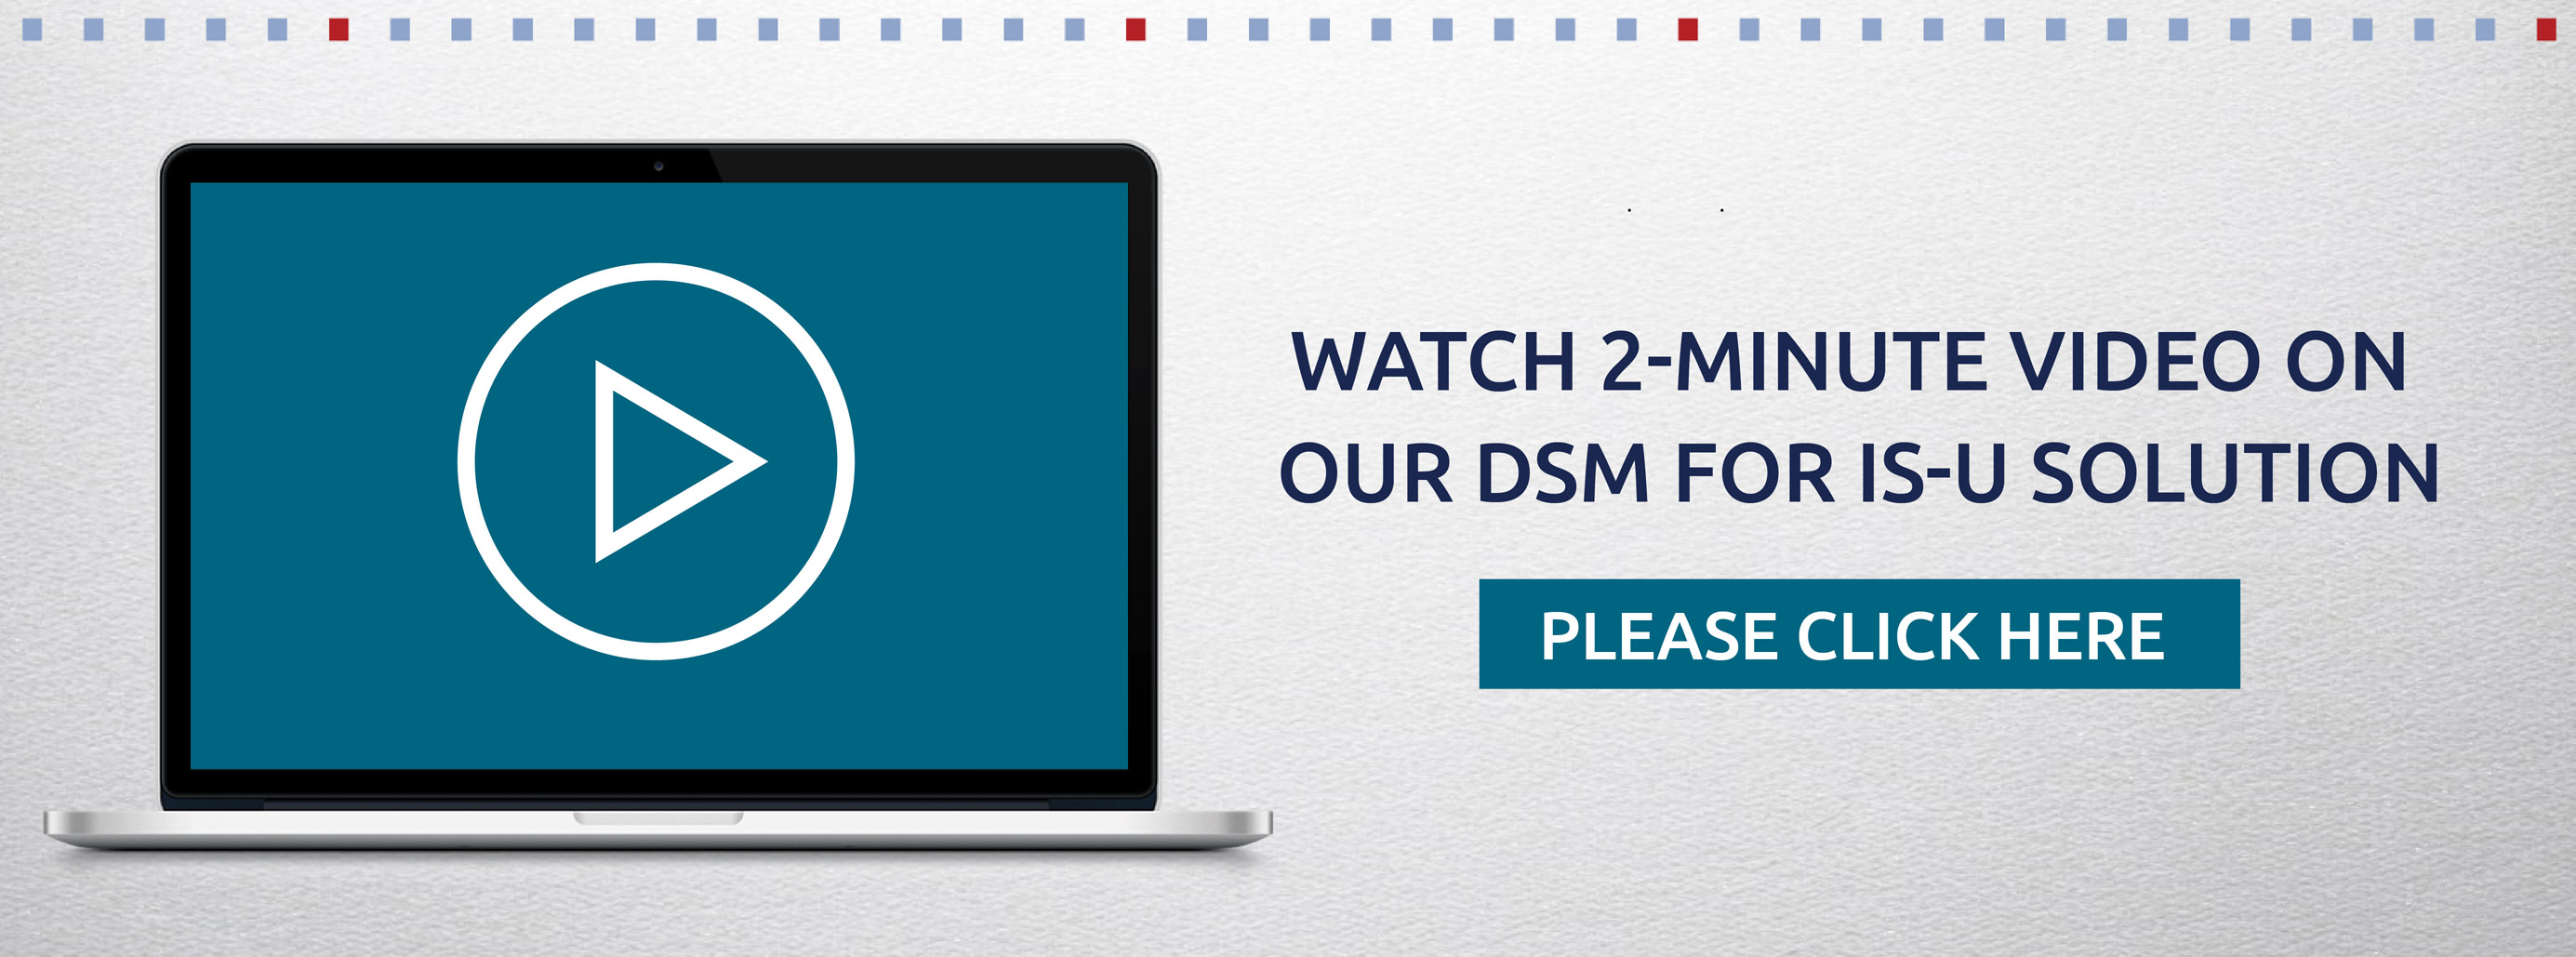 2-Video DSM for IS-U solution CTA